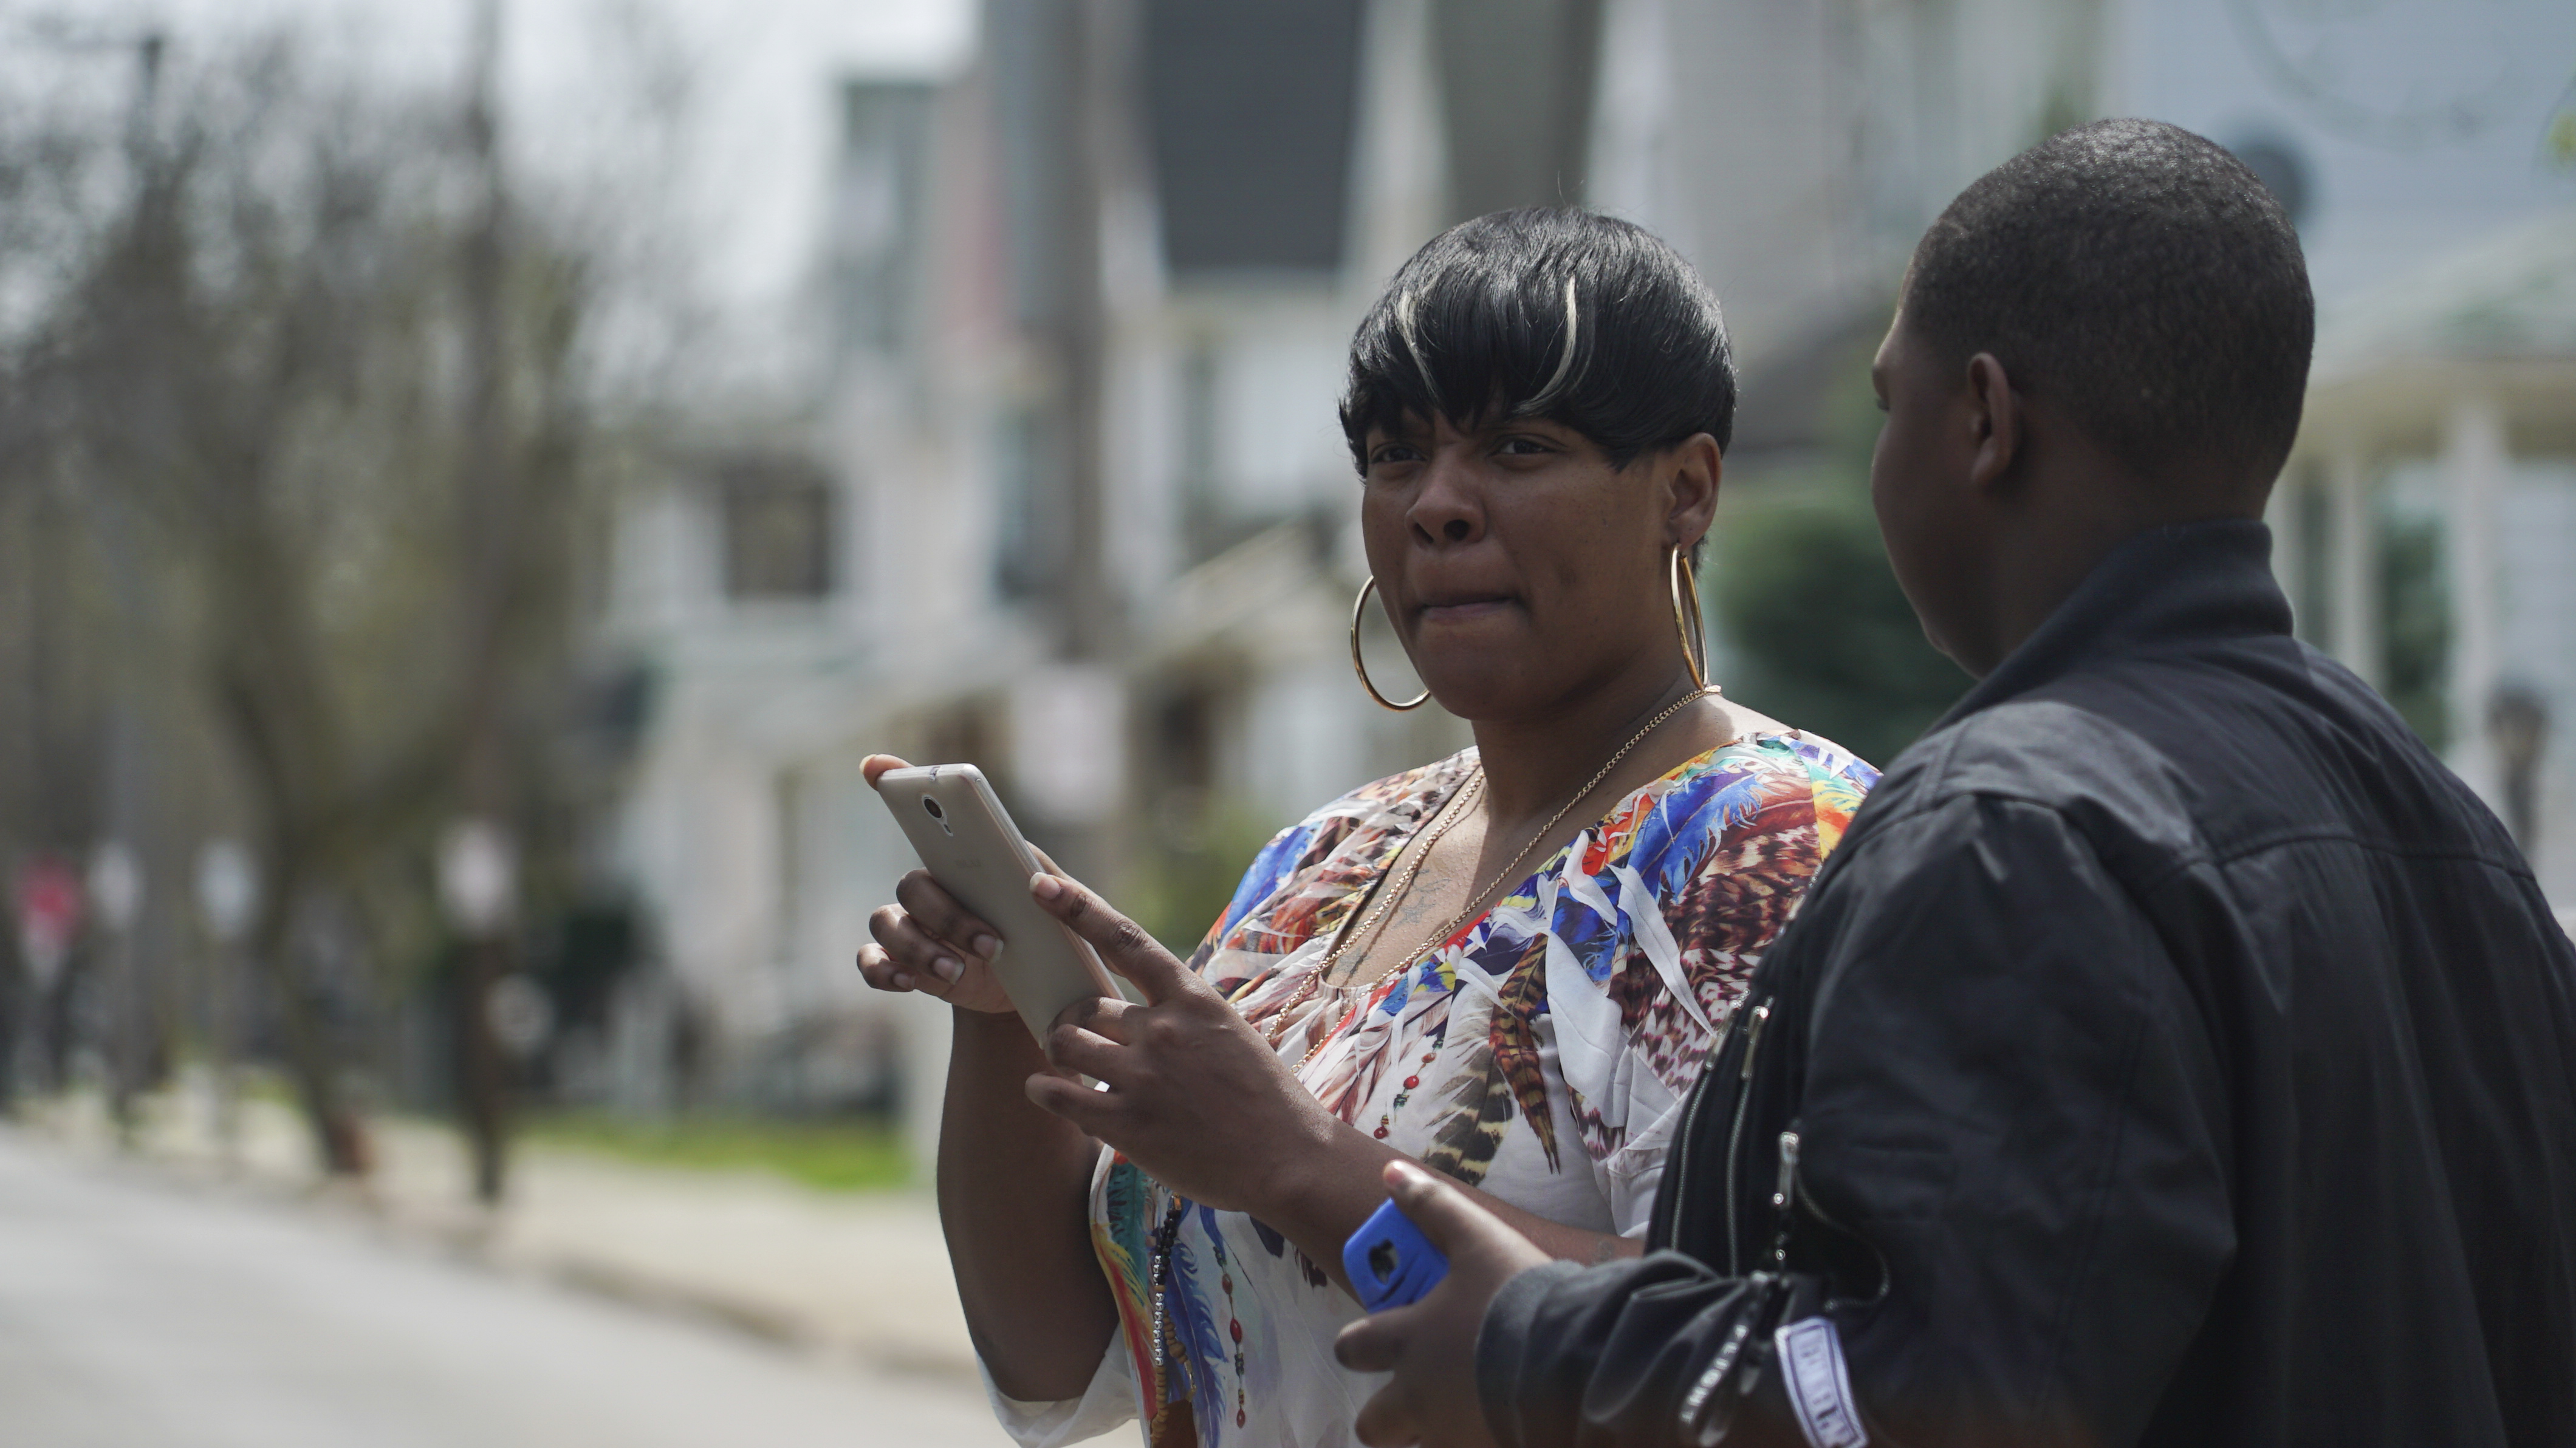 Alexis Lee, a childhood friend of Steve Stephens, speaks with a neighbor near Stephens' childhood home in Cleveland, Ohio, Monday, April 17, 2017. Authorities in Cleveland have expanded their manhunt nationwide for Stephens, a man suspected of gunning down a retiree and posting a video of the crime on Facebook. (AP Photo/Dake Kang)